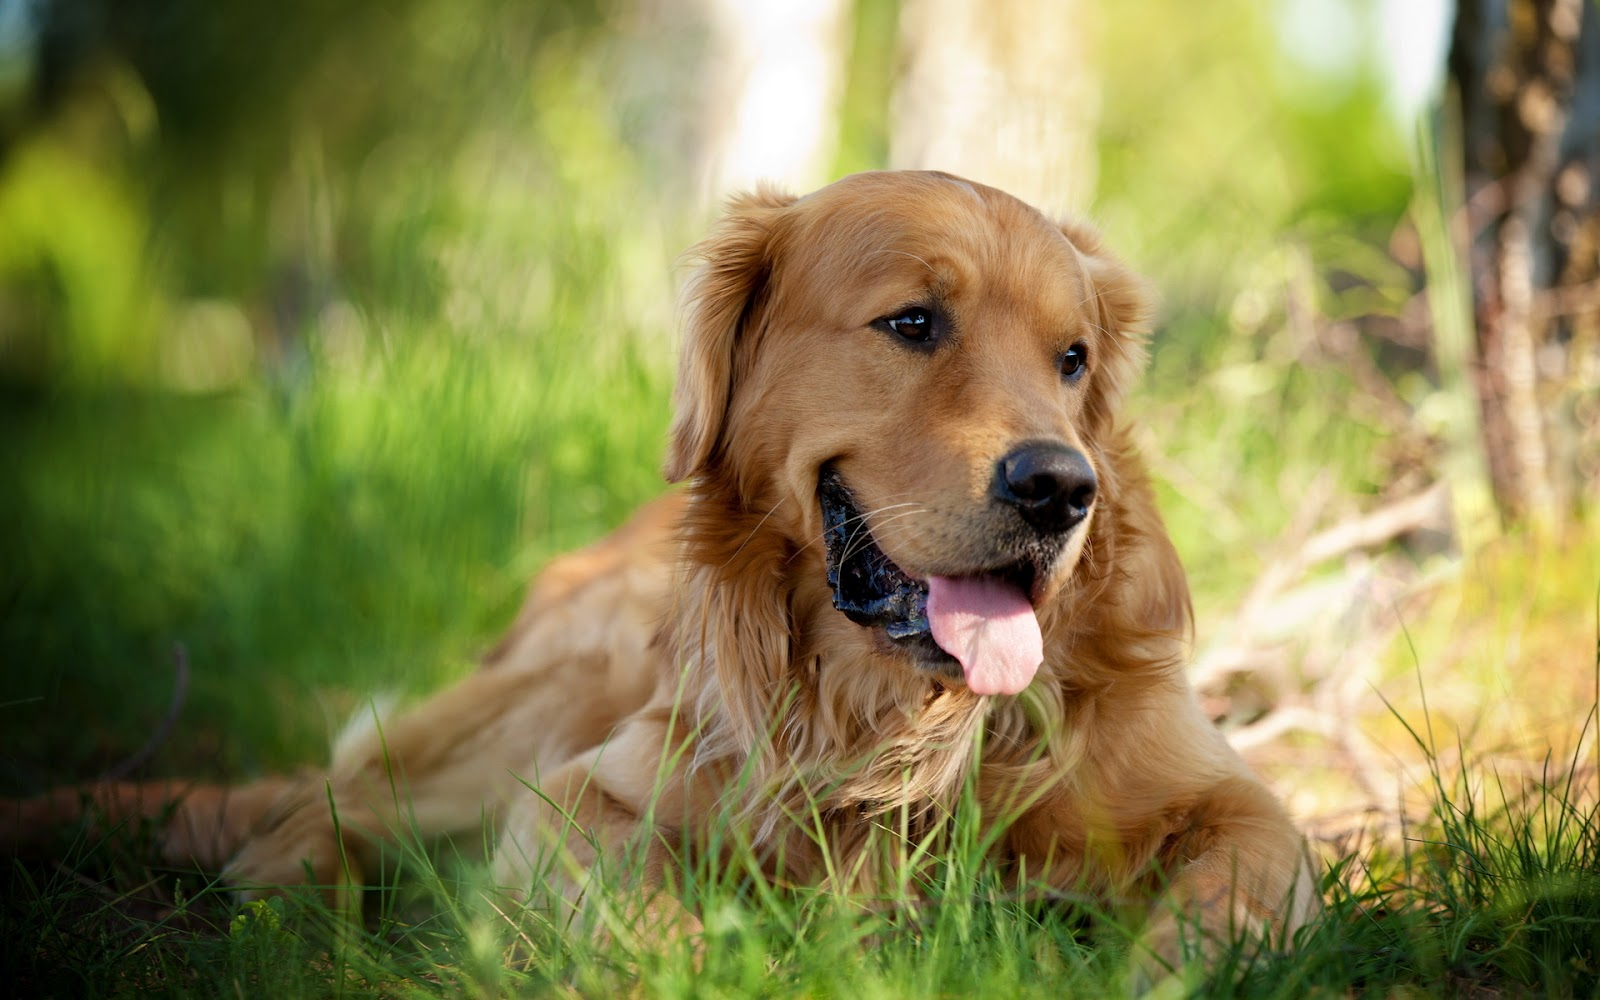 wallpaper of dogs puppy free download